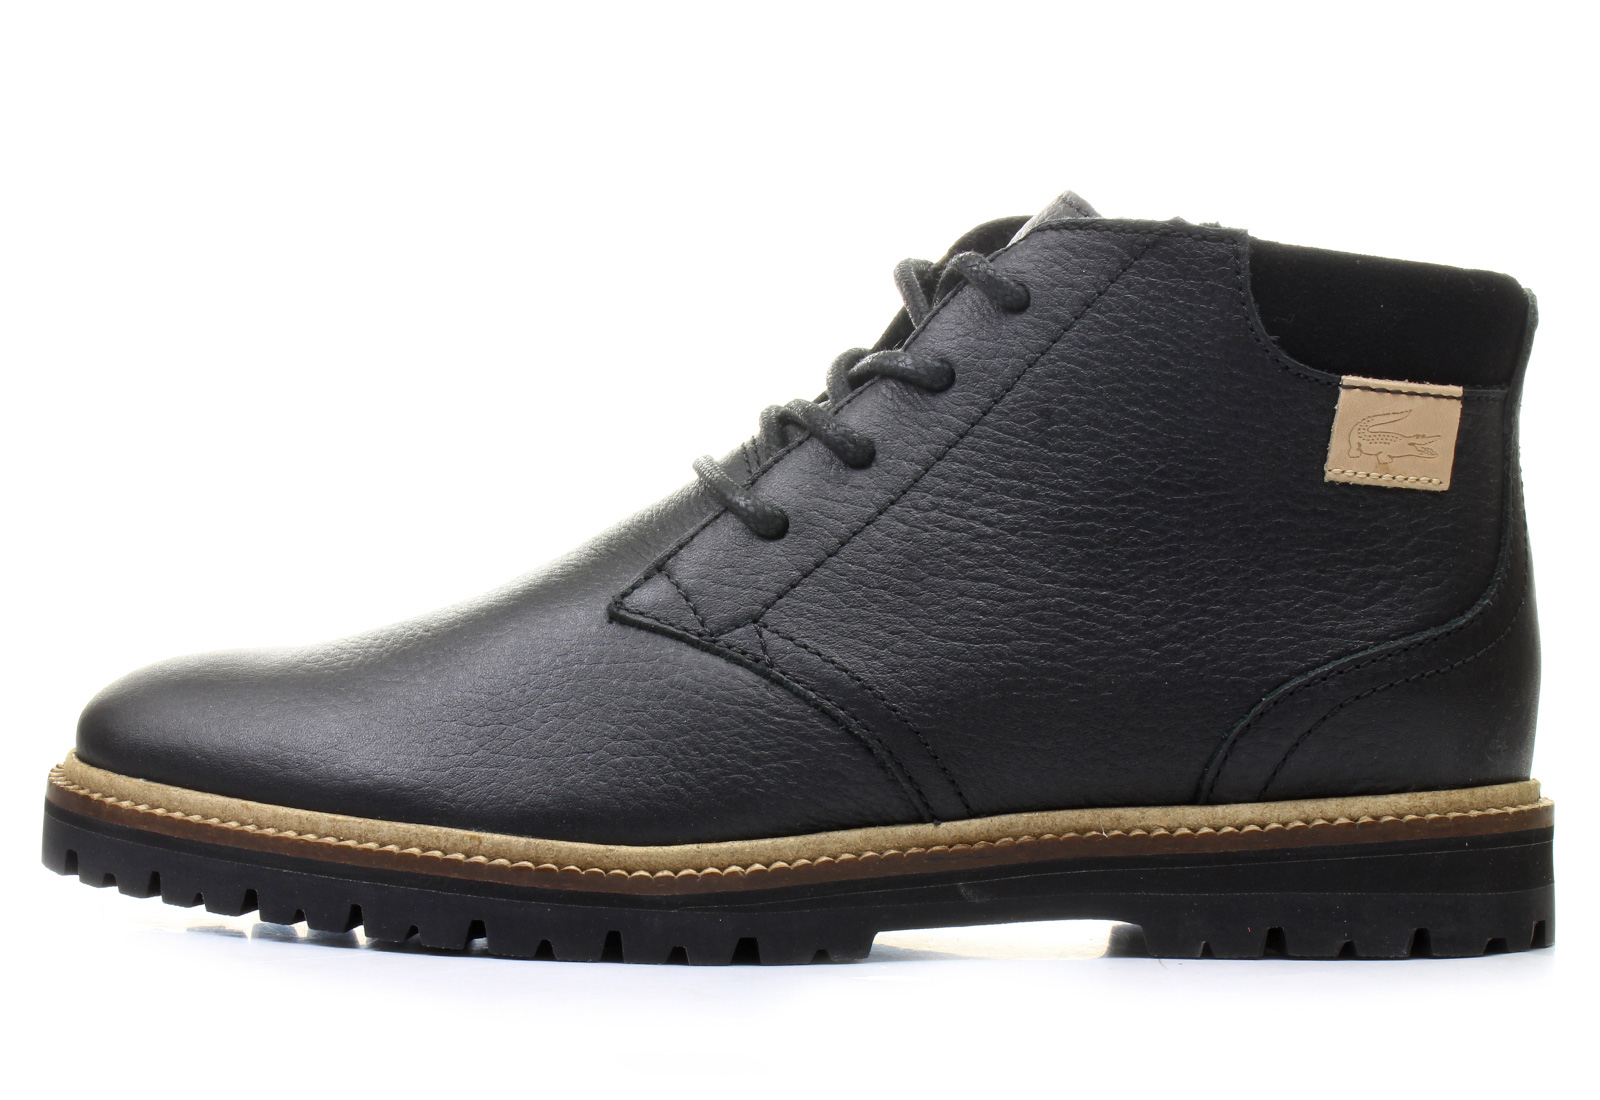 lacoste boots montbard chukka 154srm4007024 online